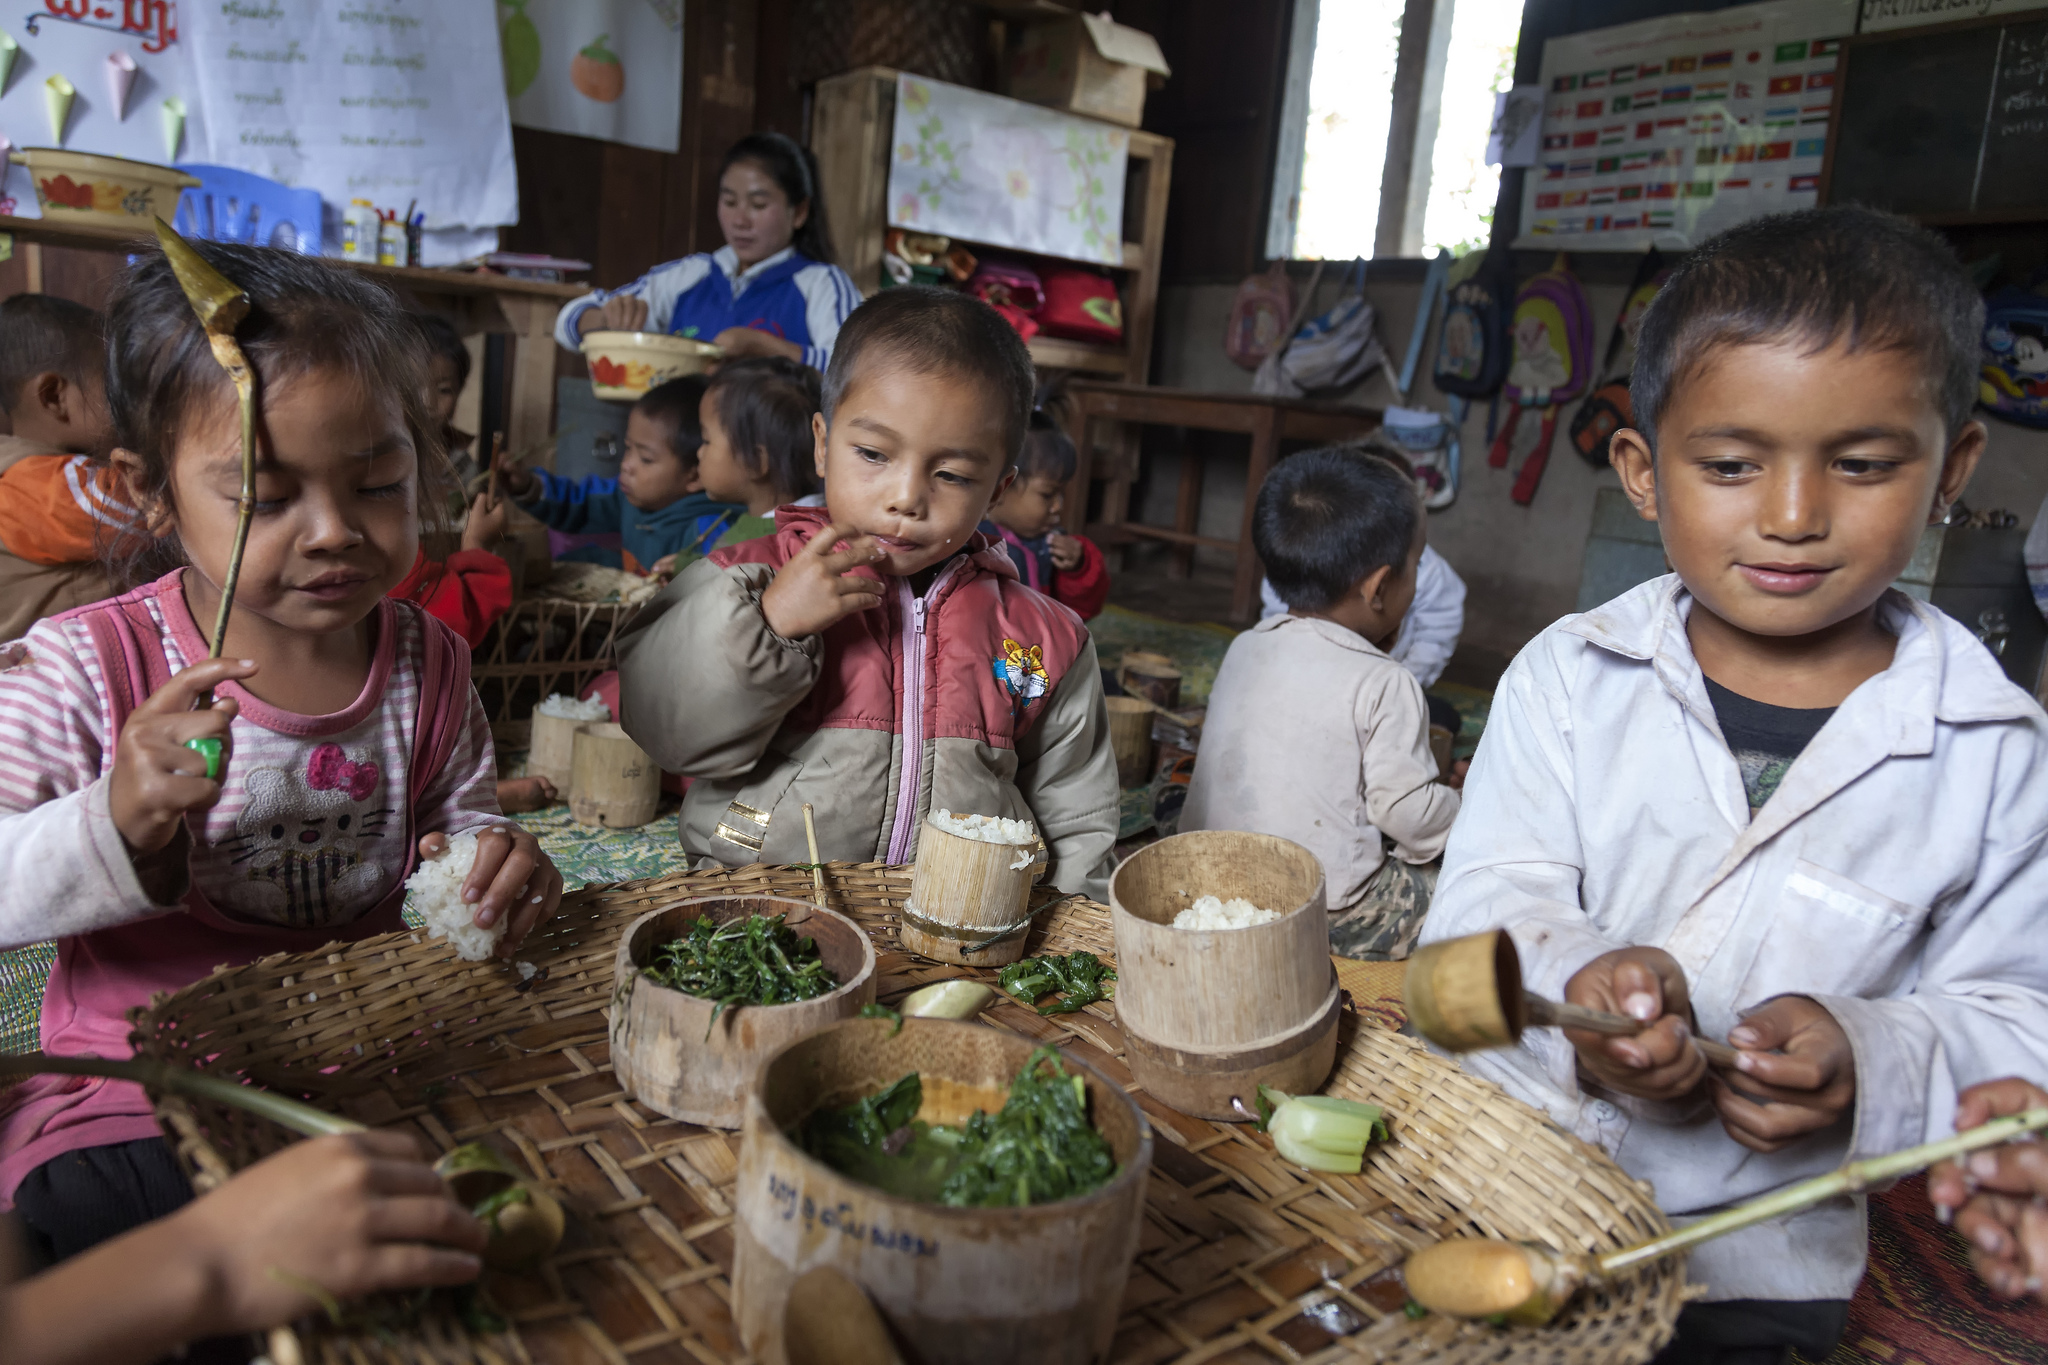 Children in Laos eating school meal